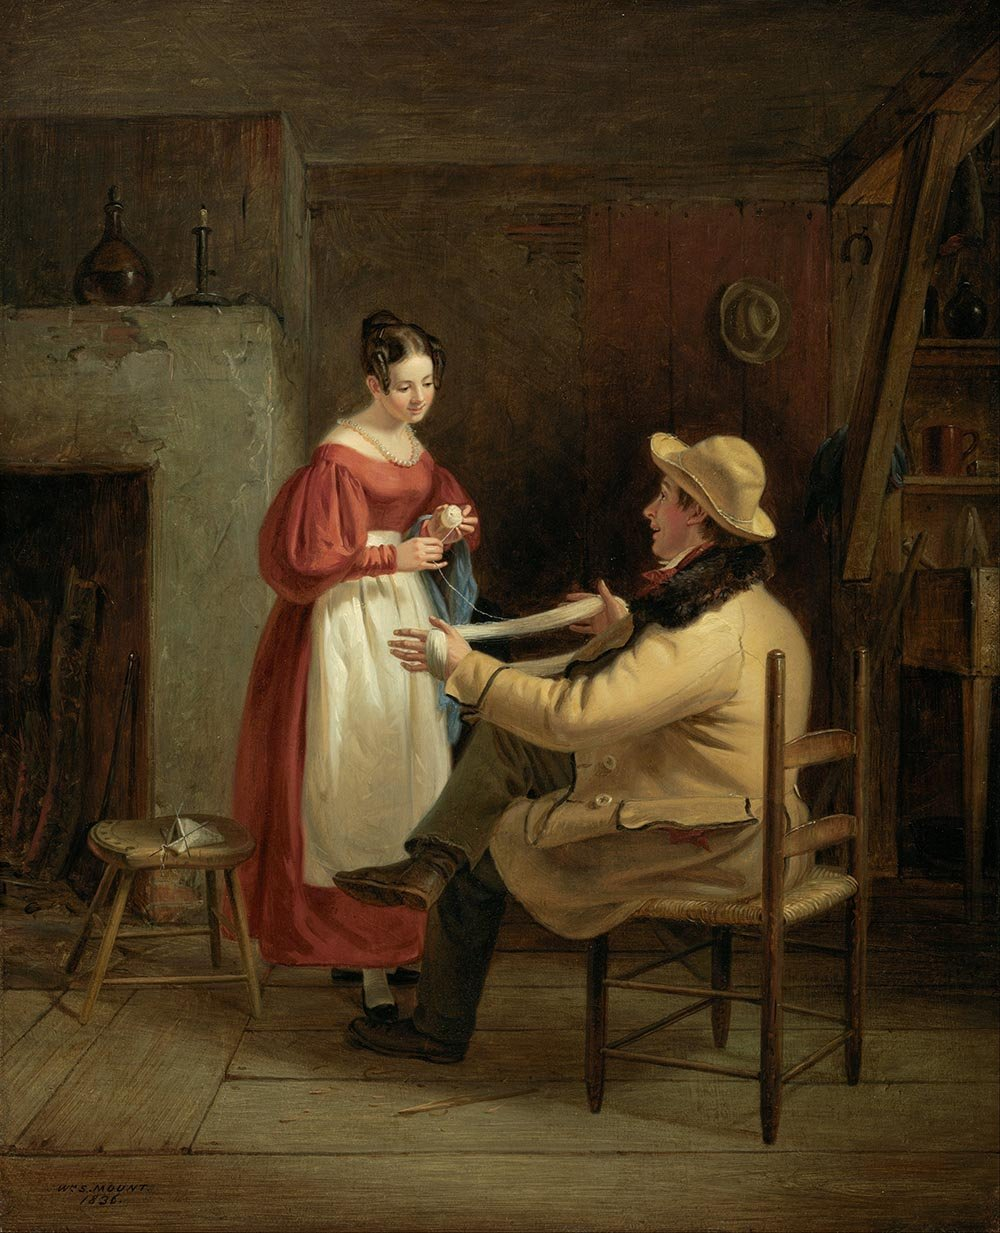 100% Hand Painted Oil on Canvas - William Sidney Mount - Winding Up - 24x36 Inch